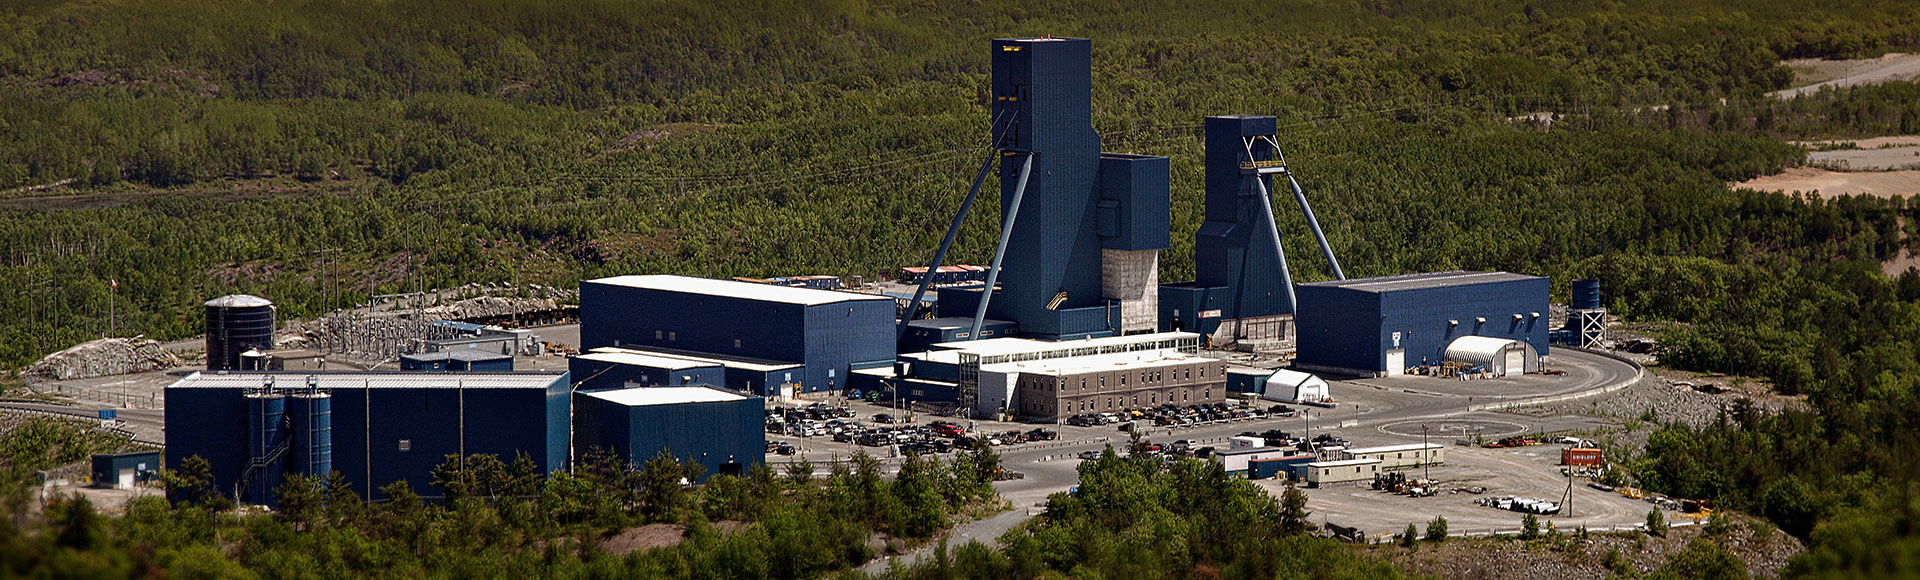 Hatch and Glencore Onaping Depth in Sudbury have executed operational management system (OMS) philosophies aimed at reducing in-shift variability.